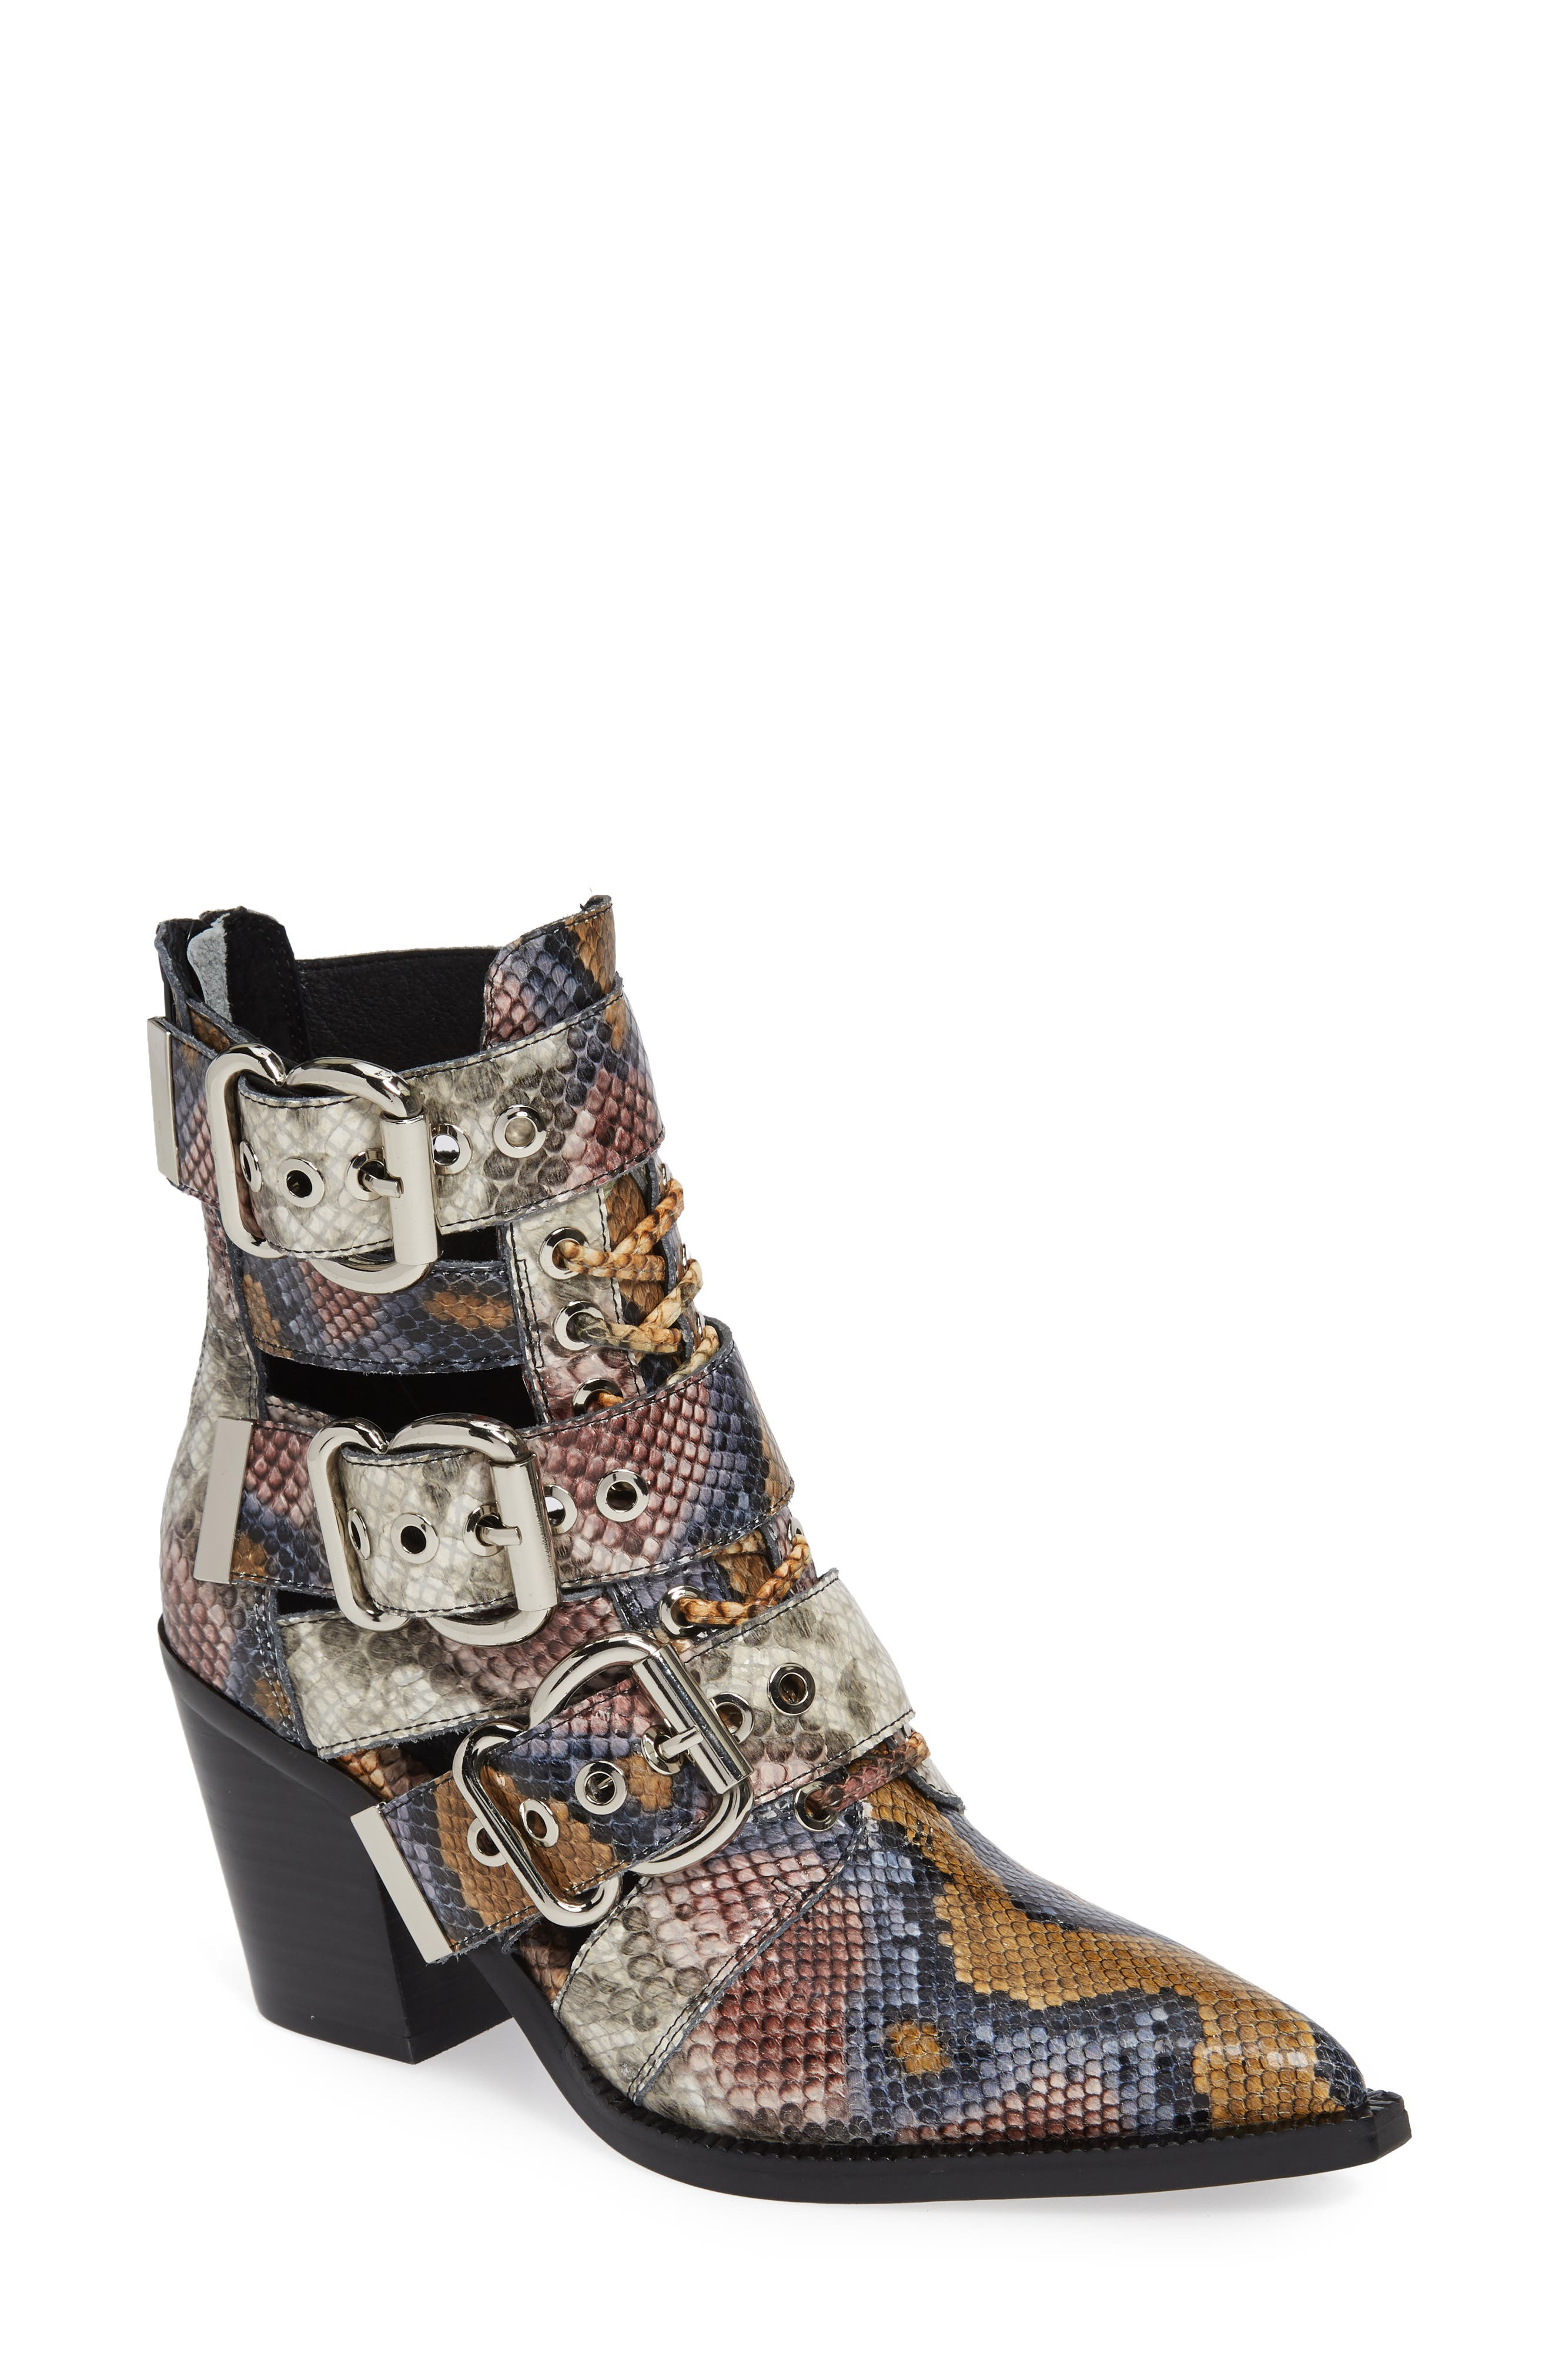 Caceres Bootie,                             Main thumbnail 1, color,                             GREY WINE SNAKE PRINT